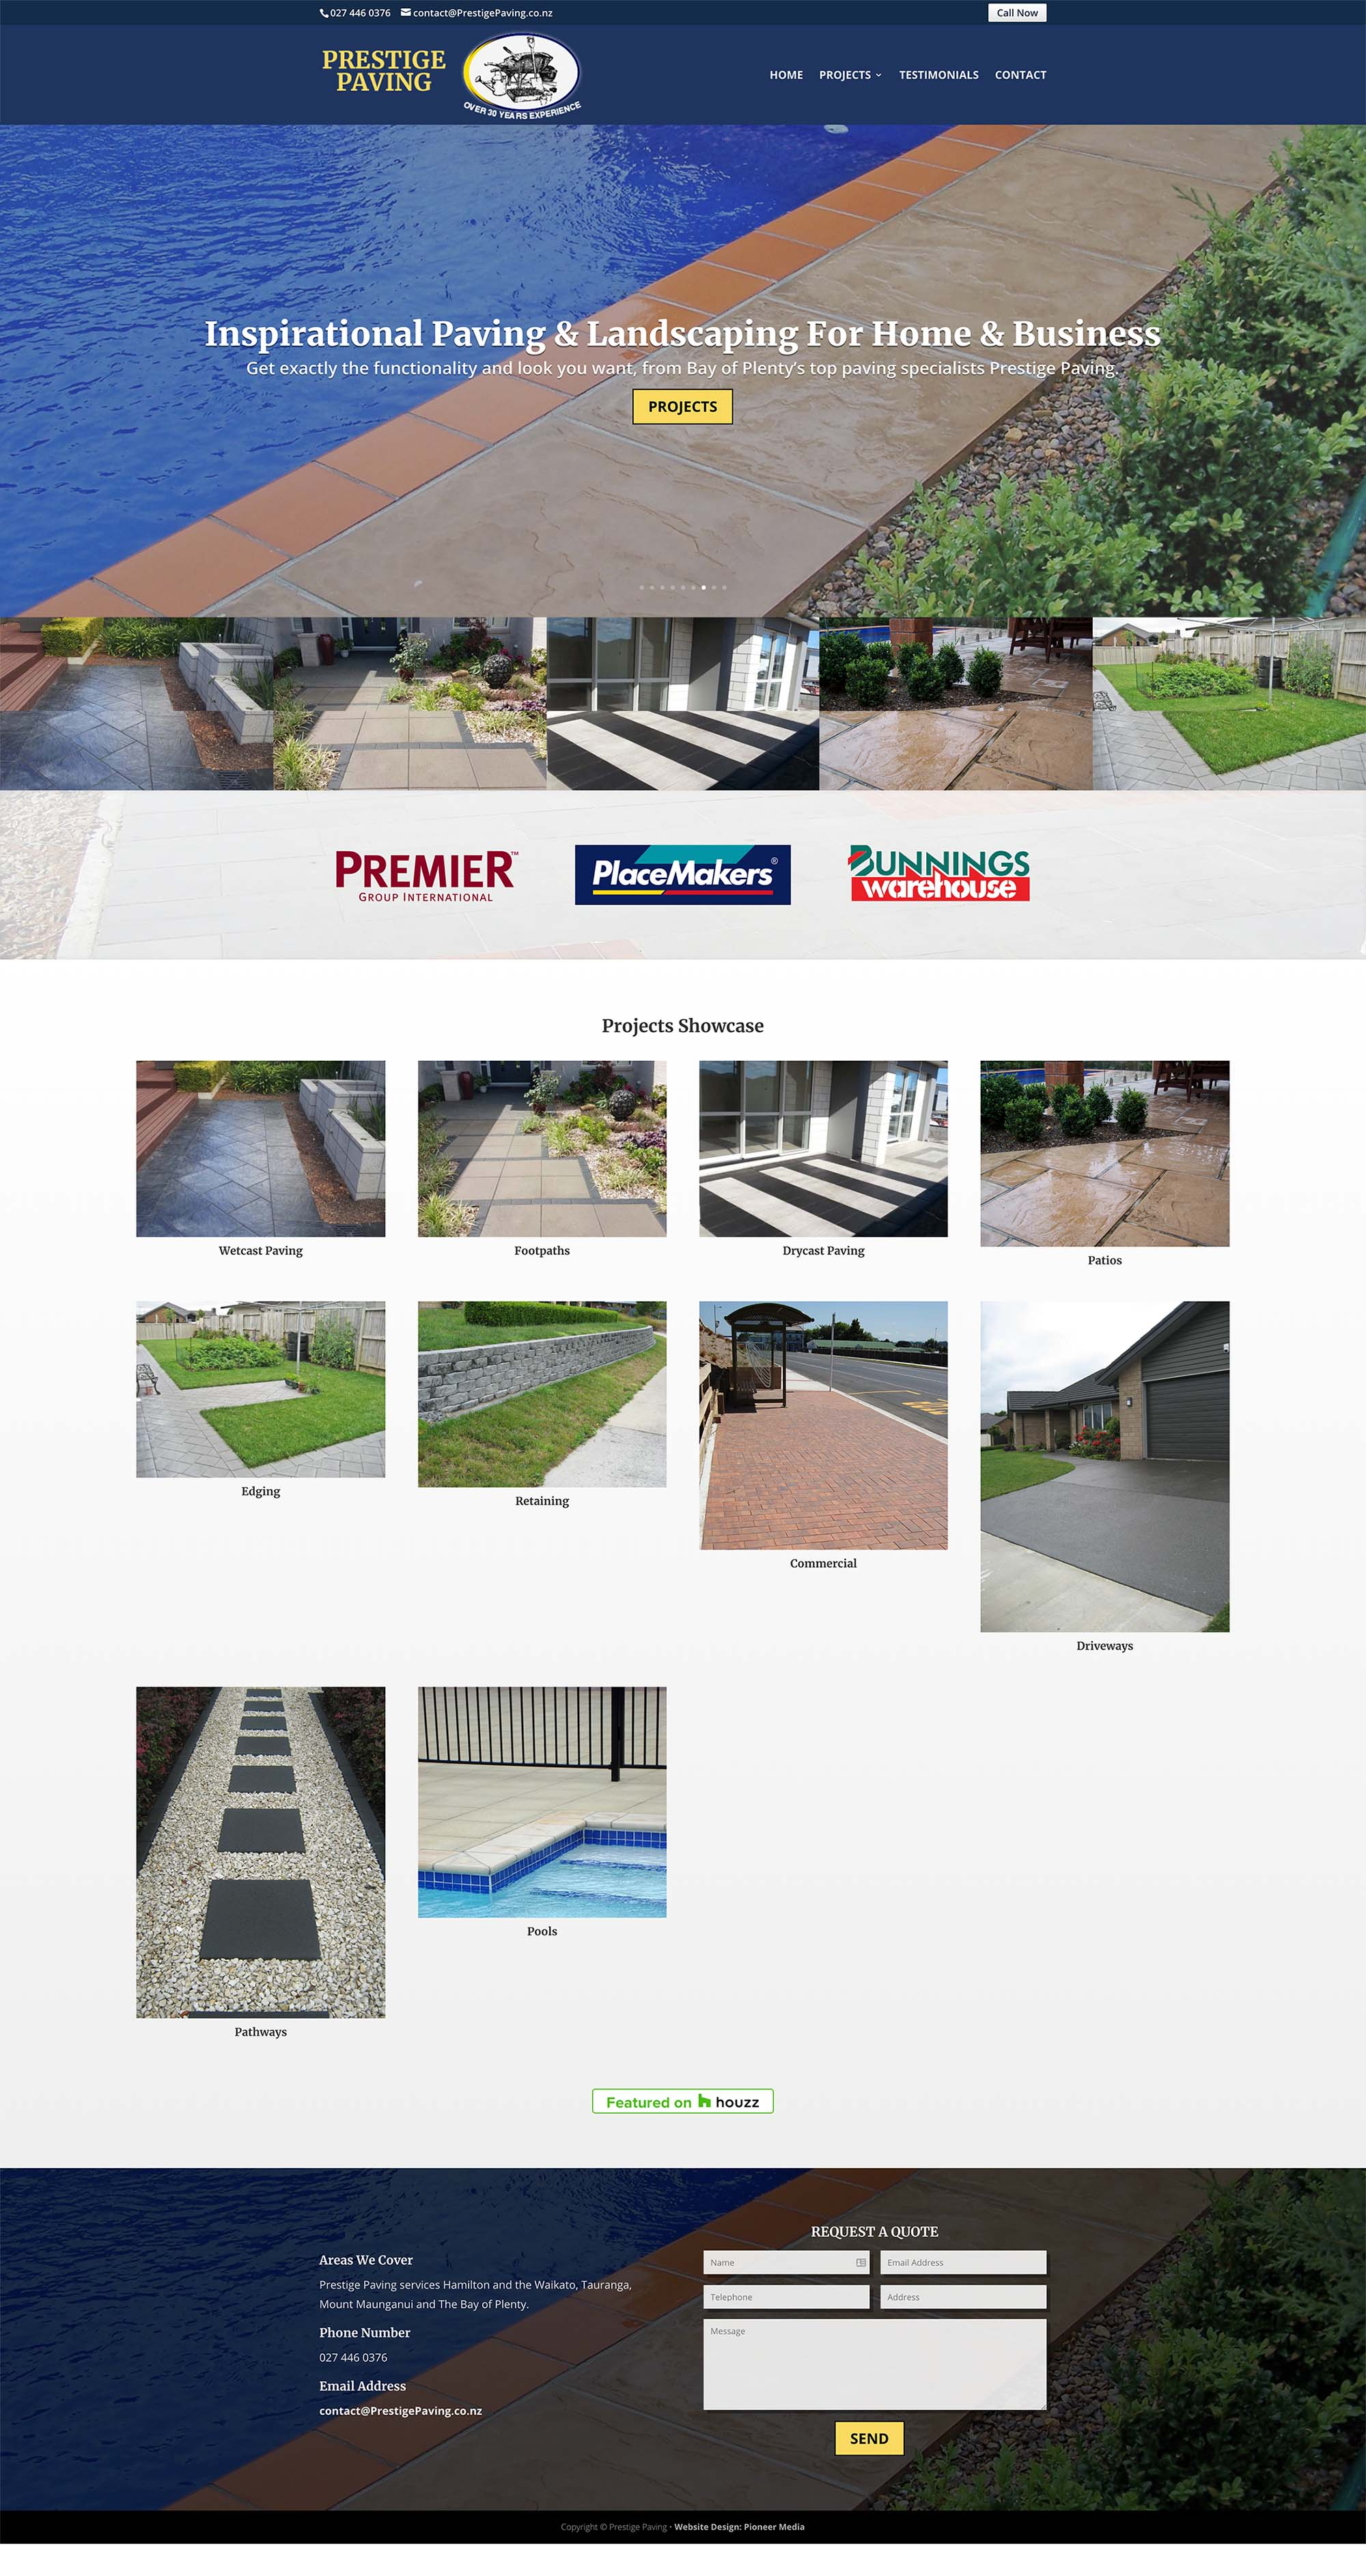 Prestige Paving Homepage Screenshot